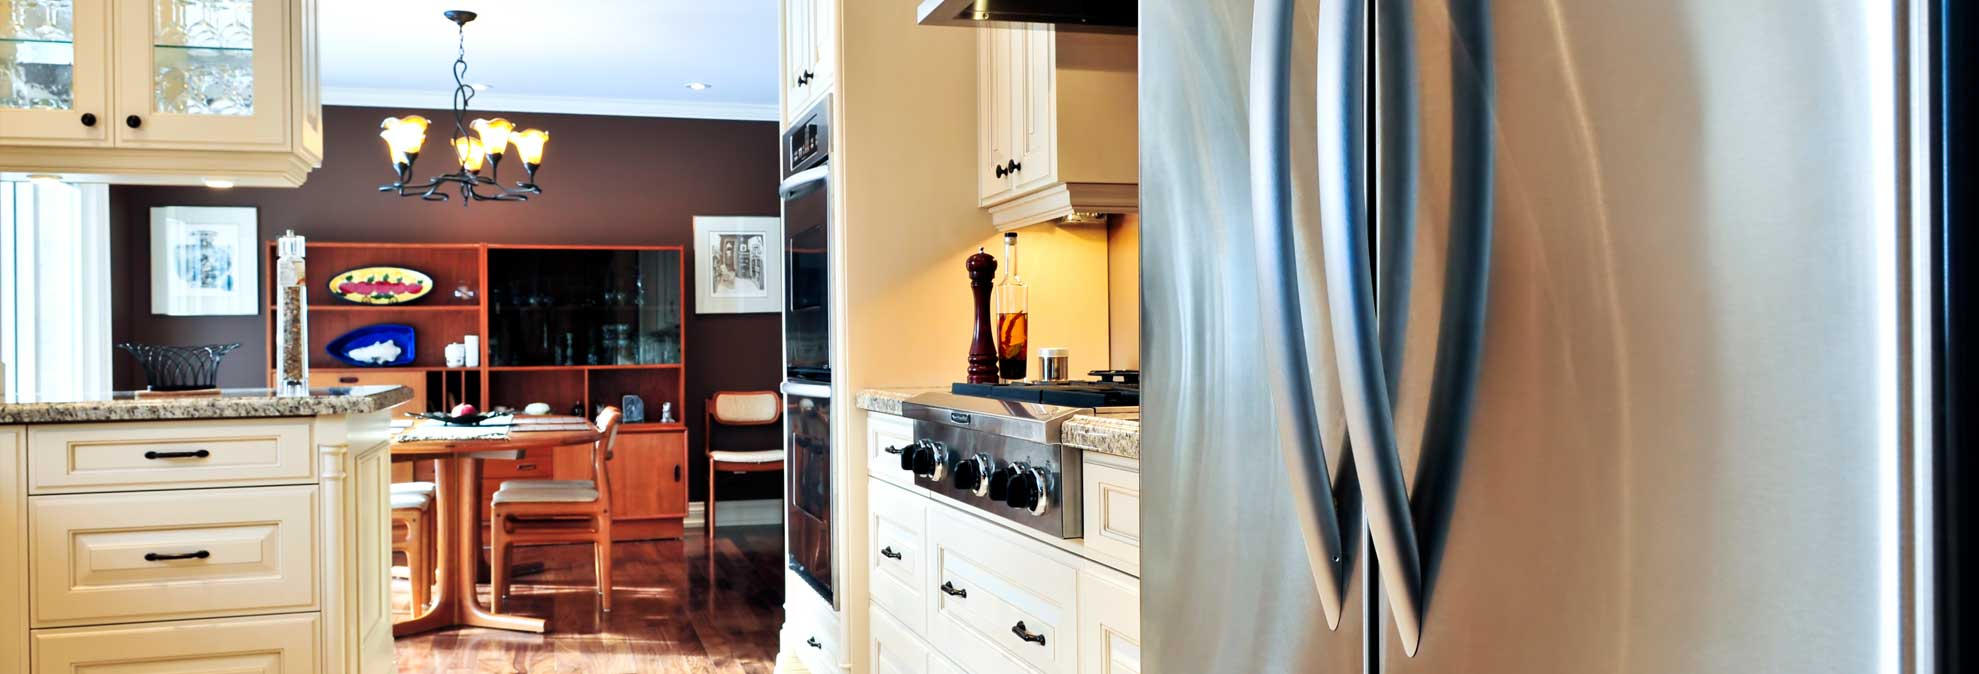 10 Great Refrigerators For 1 500 Or Less Consumer Reports